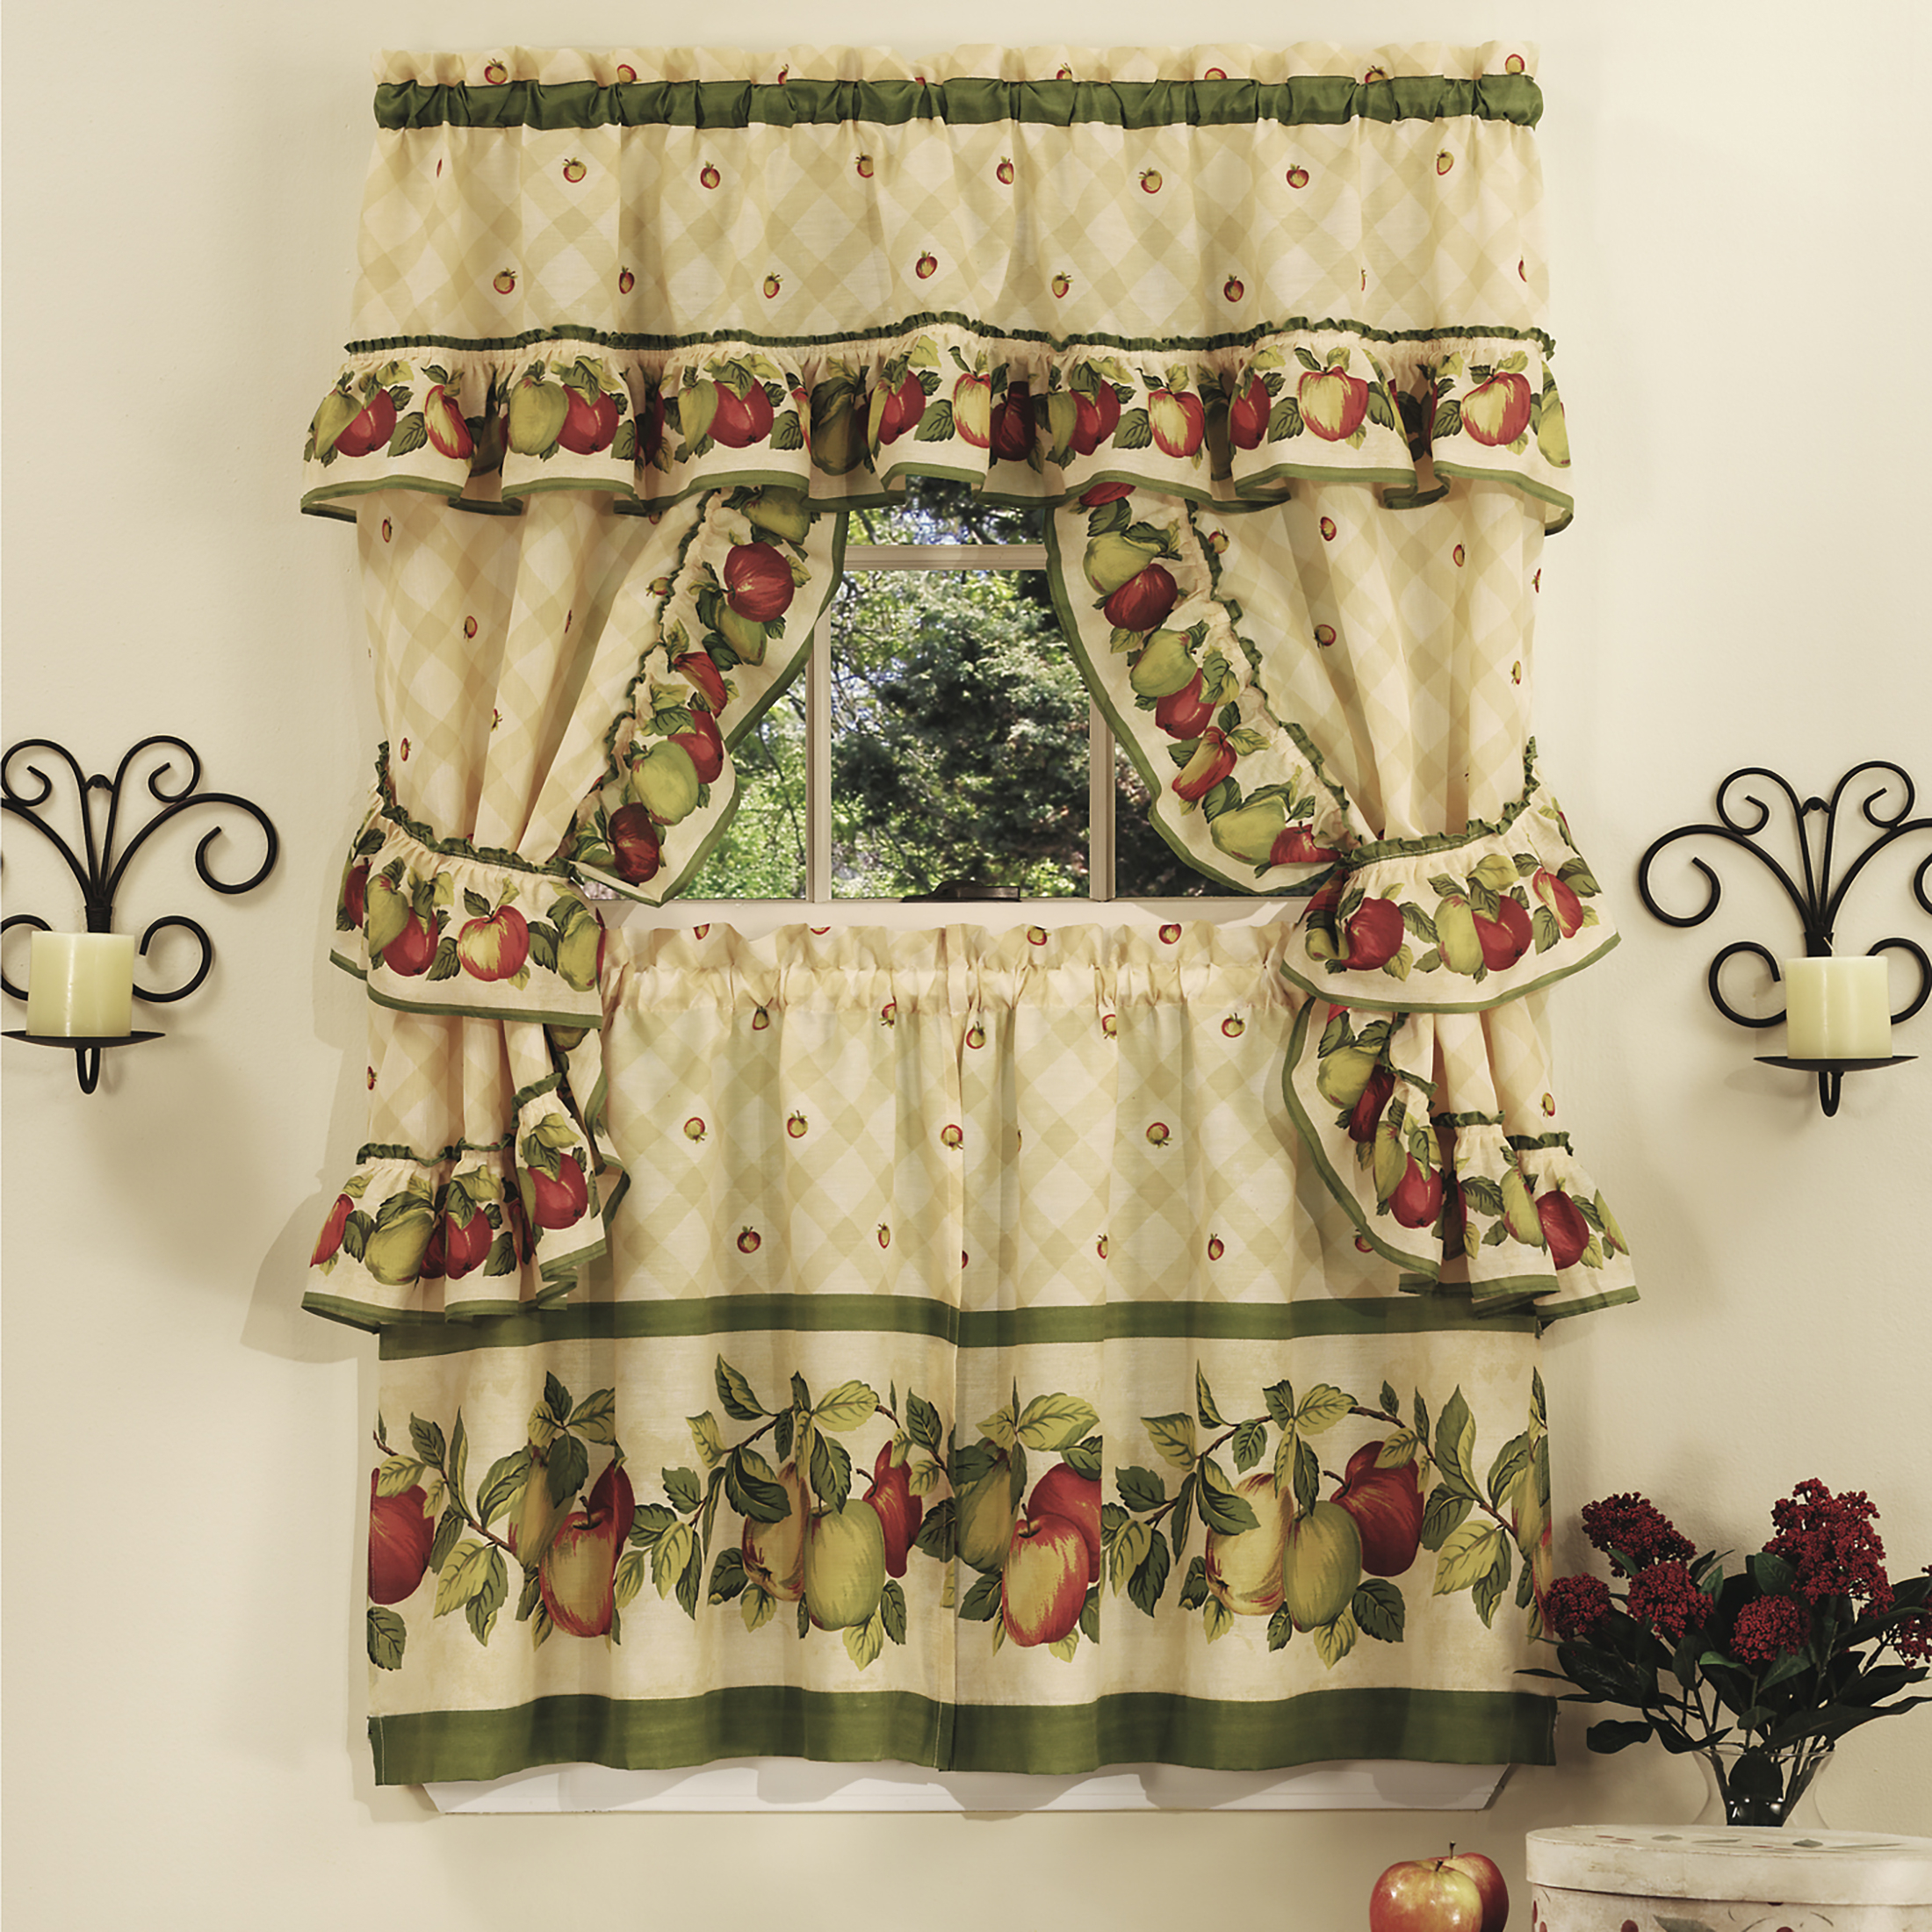 Widely Used Details About 5pc Window Kitchen Curtain Cottage Set, Apple Vines, Tiers, Valance, Tiebacks Regarding Delicious Apples Kitchen Curtain Tier And Valance Sets (View 2 of 20)